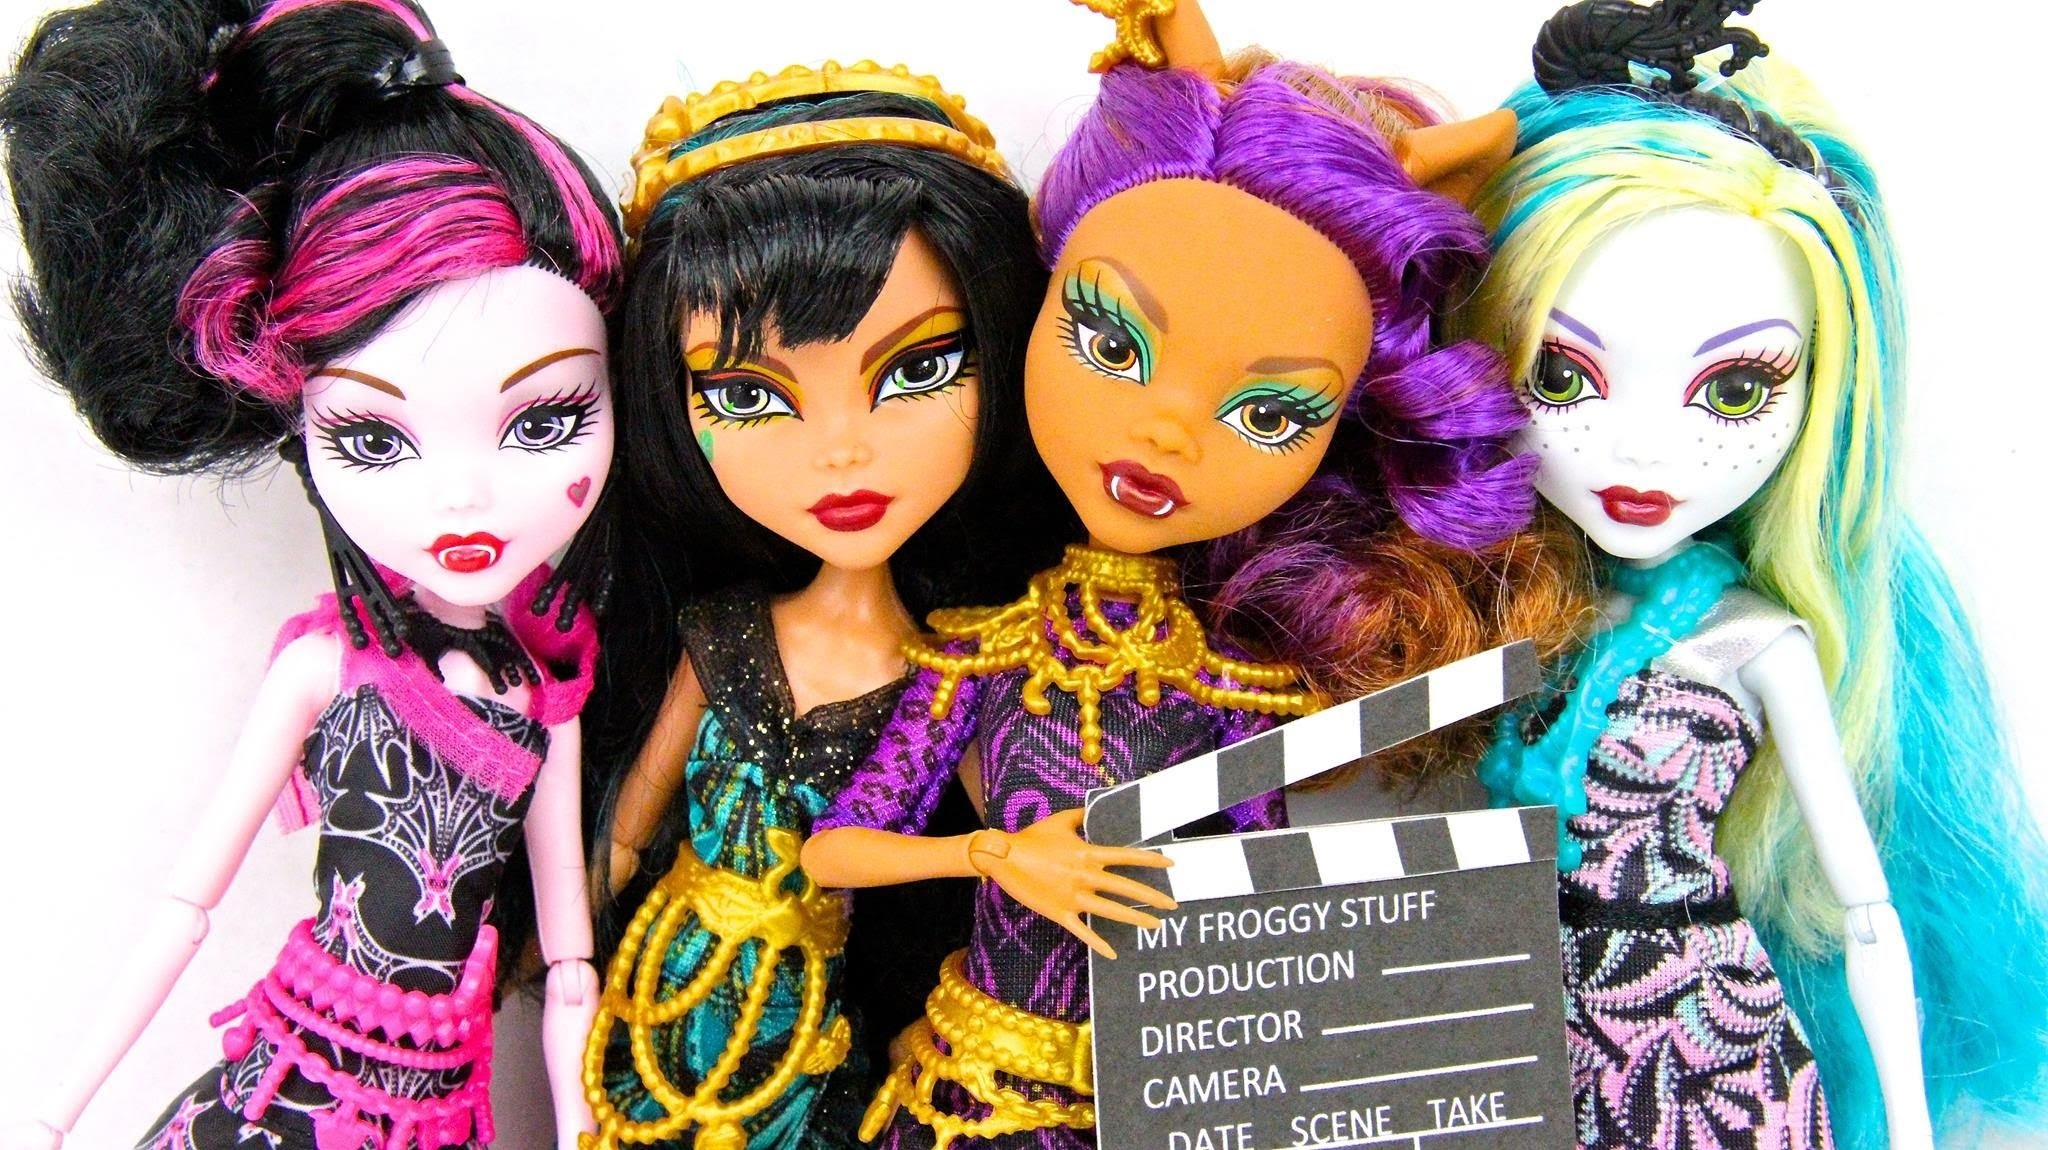 Doll Review: Monster High: Frights, Camera, Action | plus Doll Collection Updates & 2 Quick Crafts